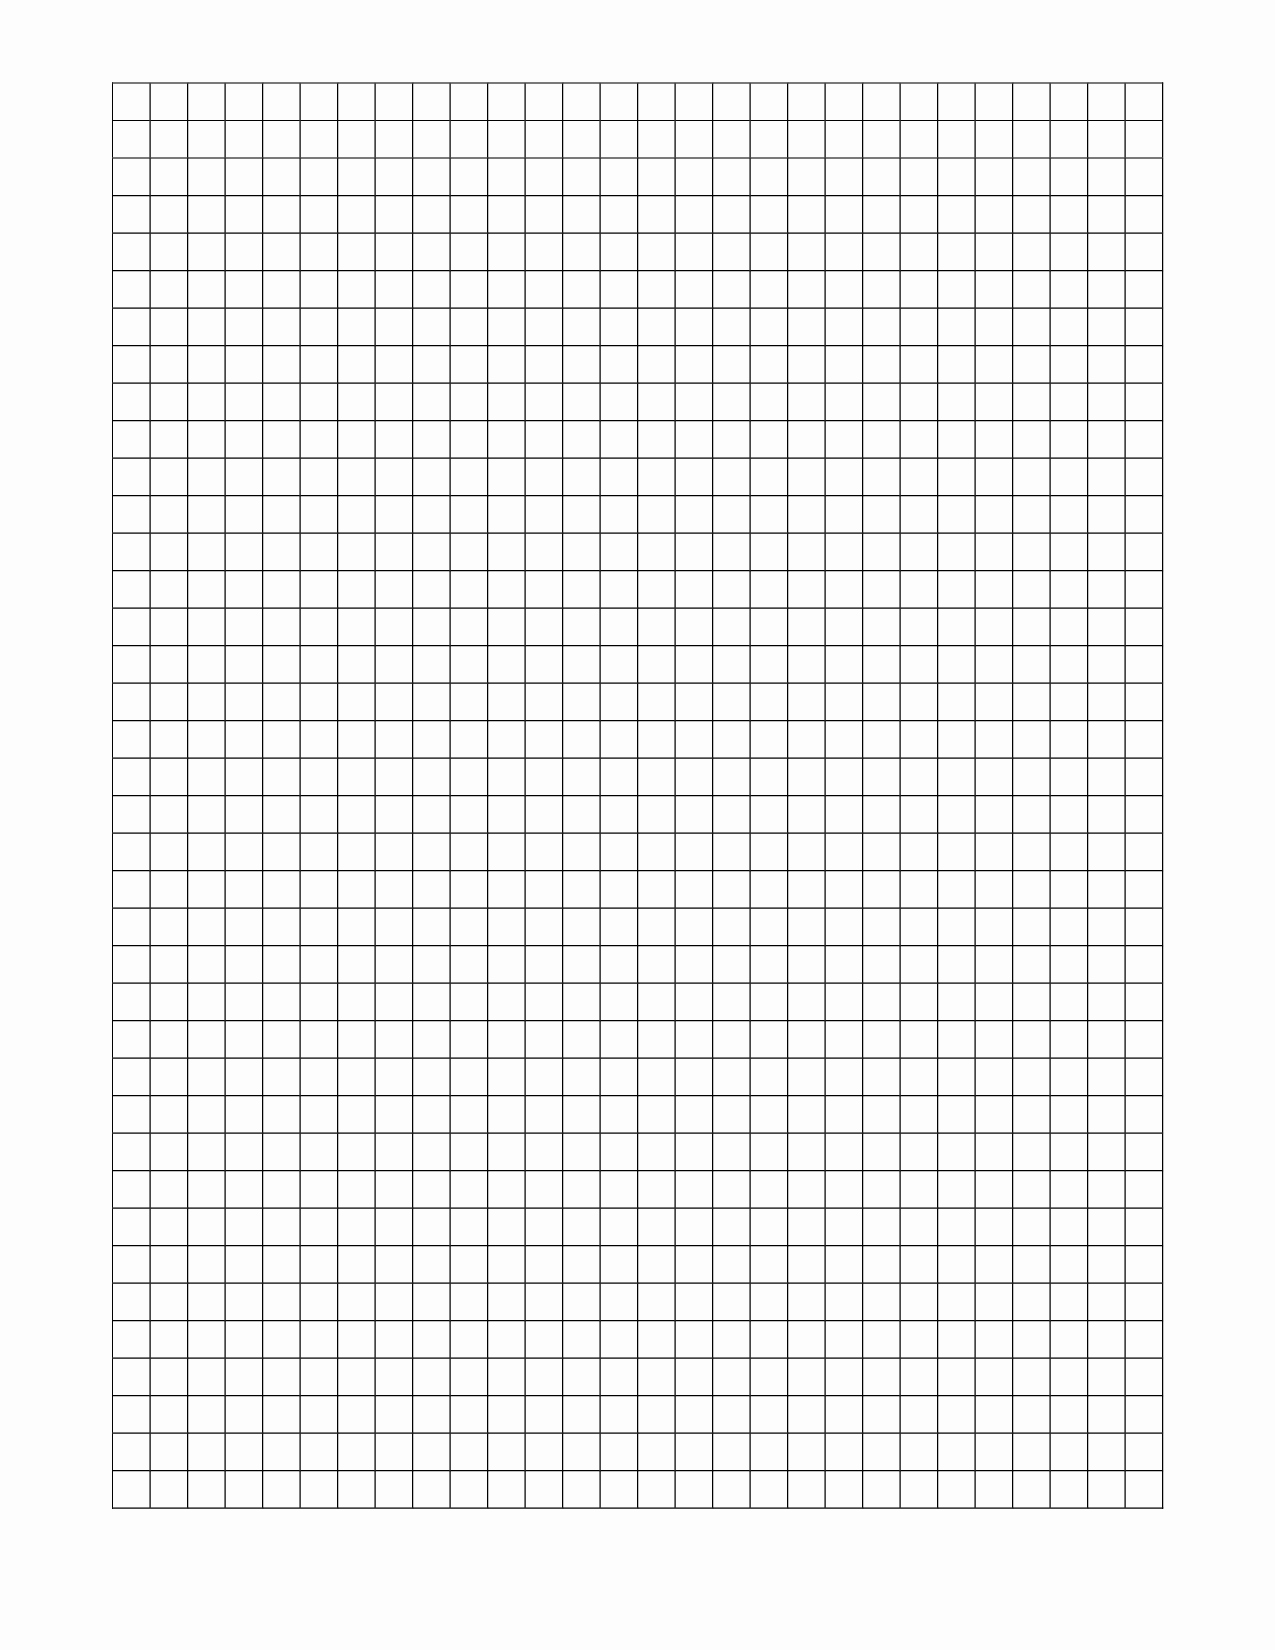 Create Graph Paper In Excel Elegant Make Graph Paper In Excel 2013 Printable Graph Paper and